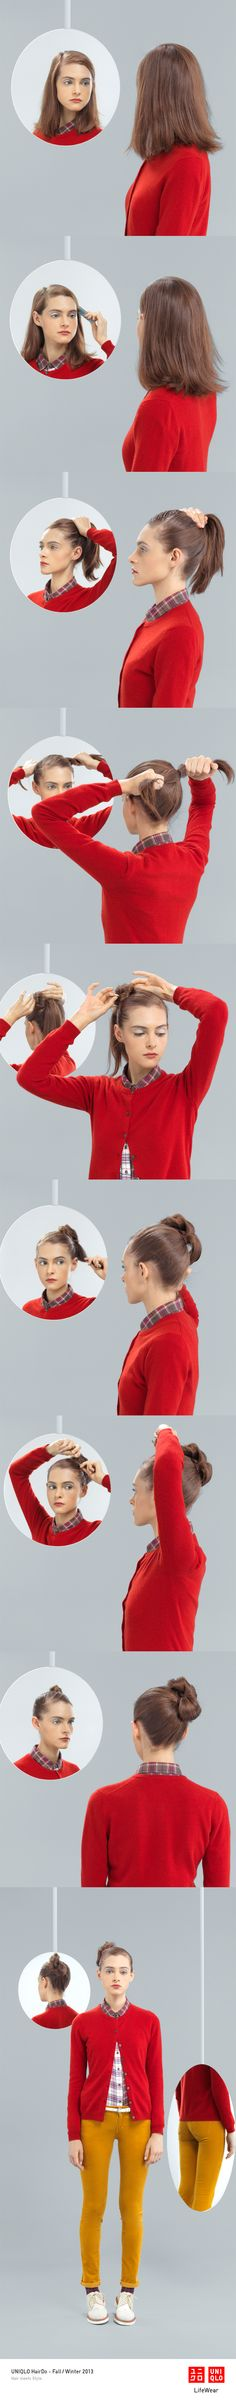 """THE KRISTY BOW"" : This hair style paired with our plaid shirt and cardigan is great for a day outside.   Click the image for DIY instructions! #UpDo #Hair #Hairstyle #DIY #UNIQLO"